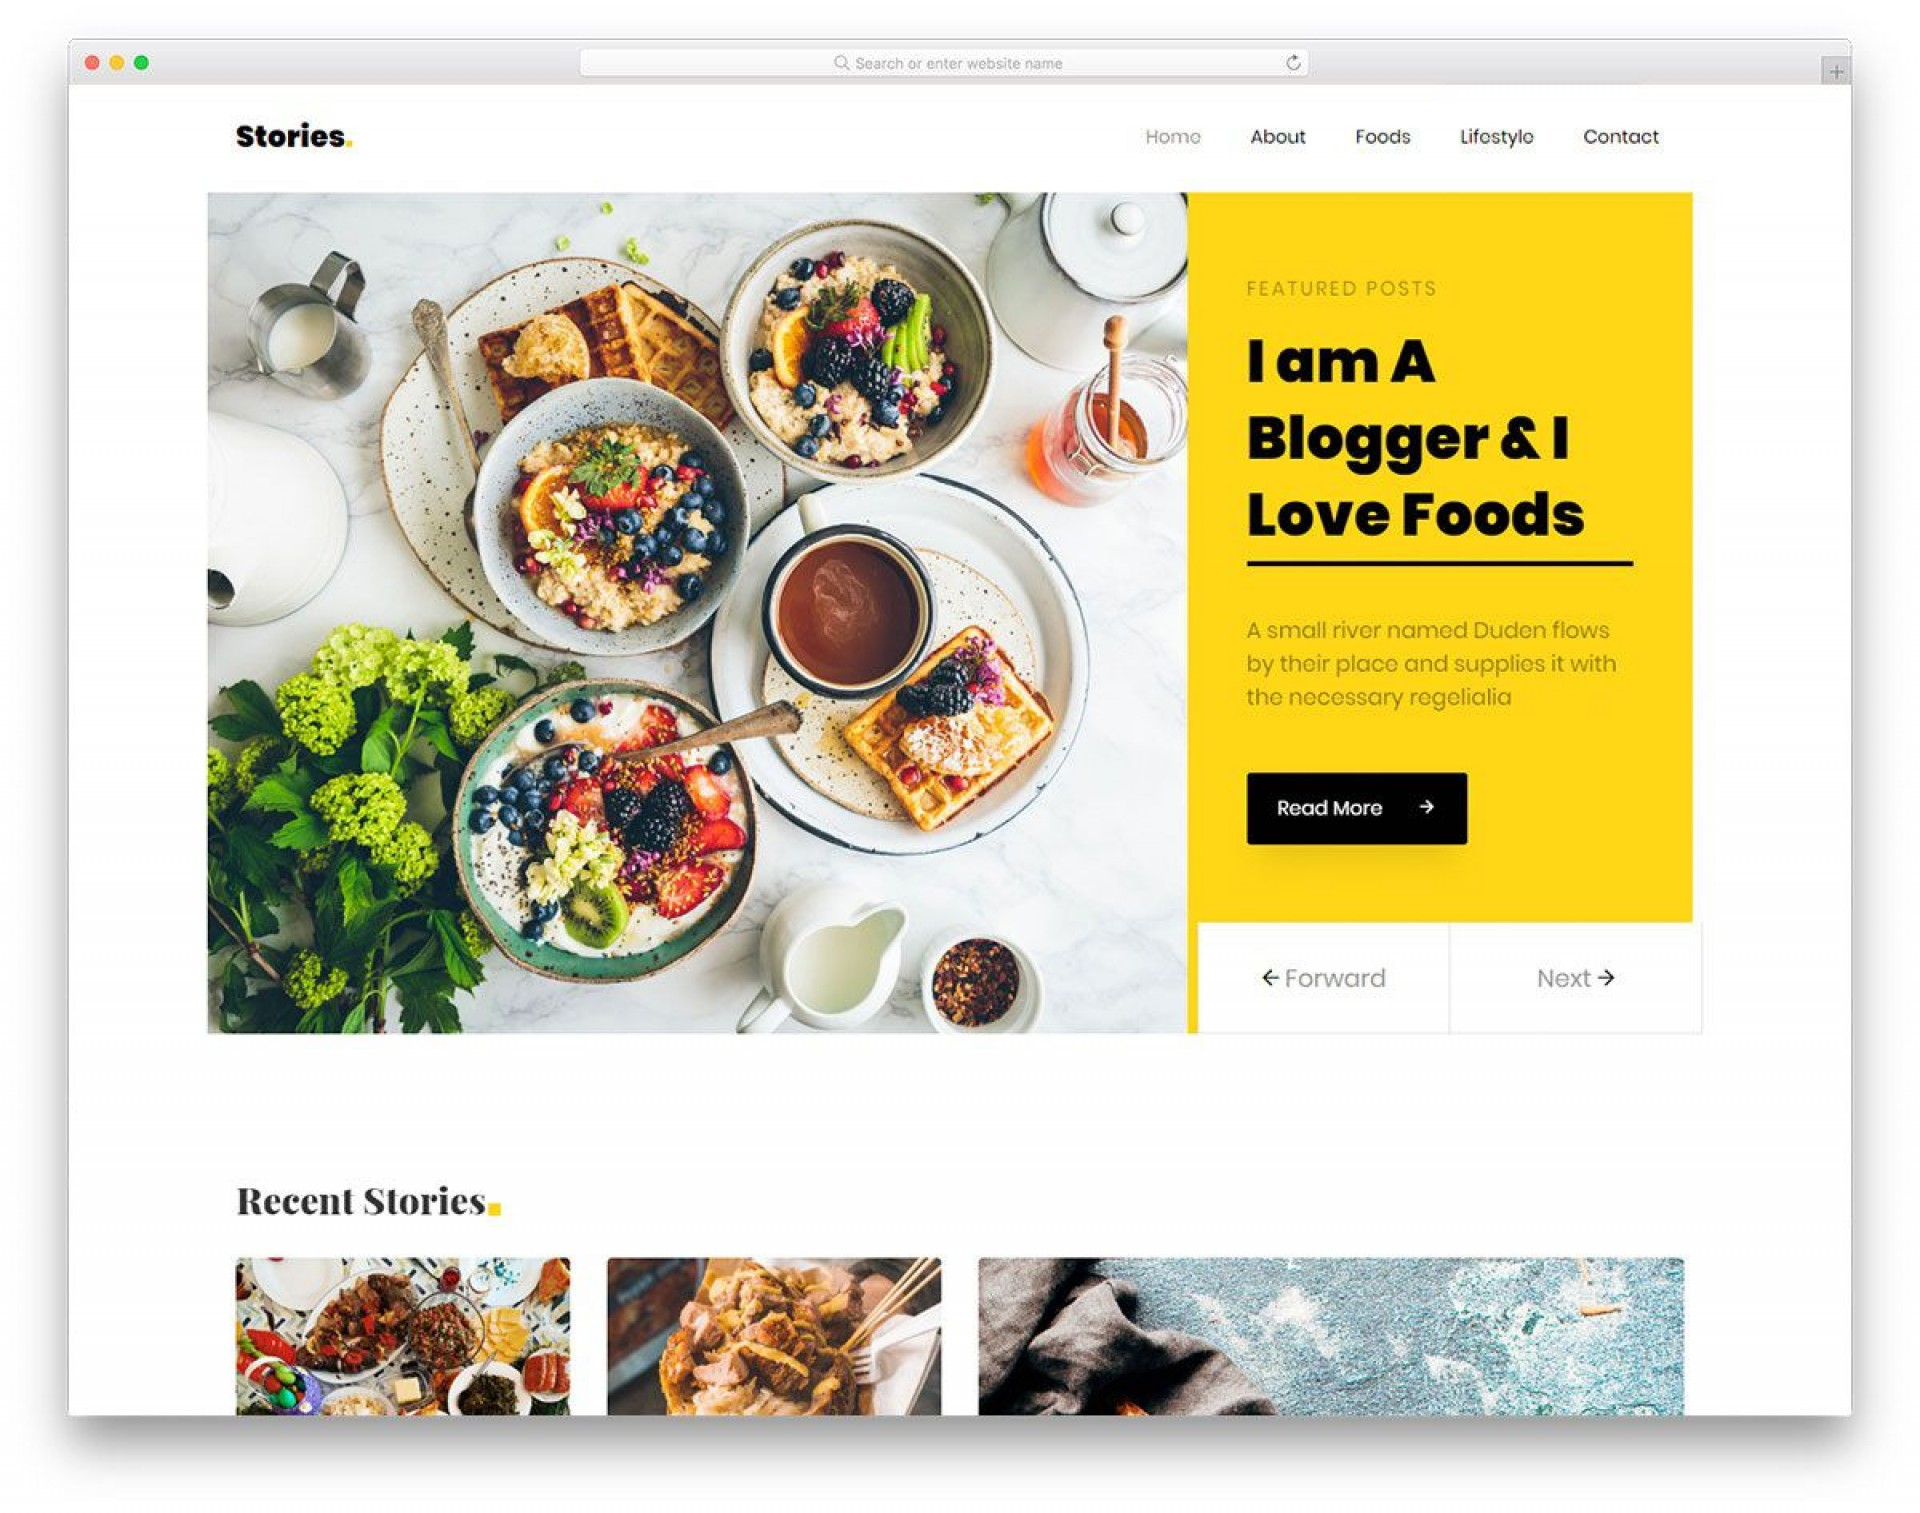 006 Fantastic Free Cs Professional Website Template Download Highest Quality  Html With Jquery1920